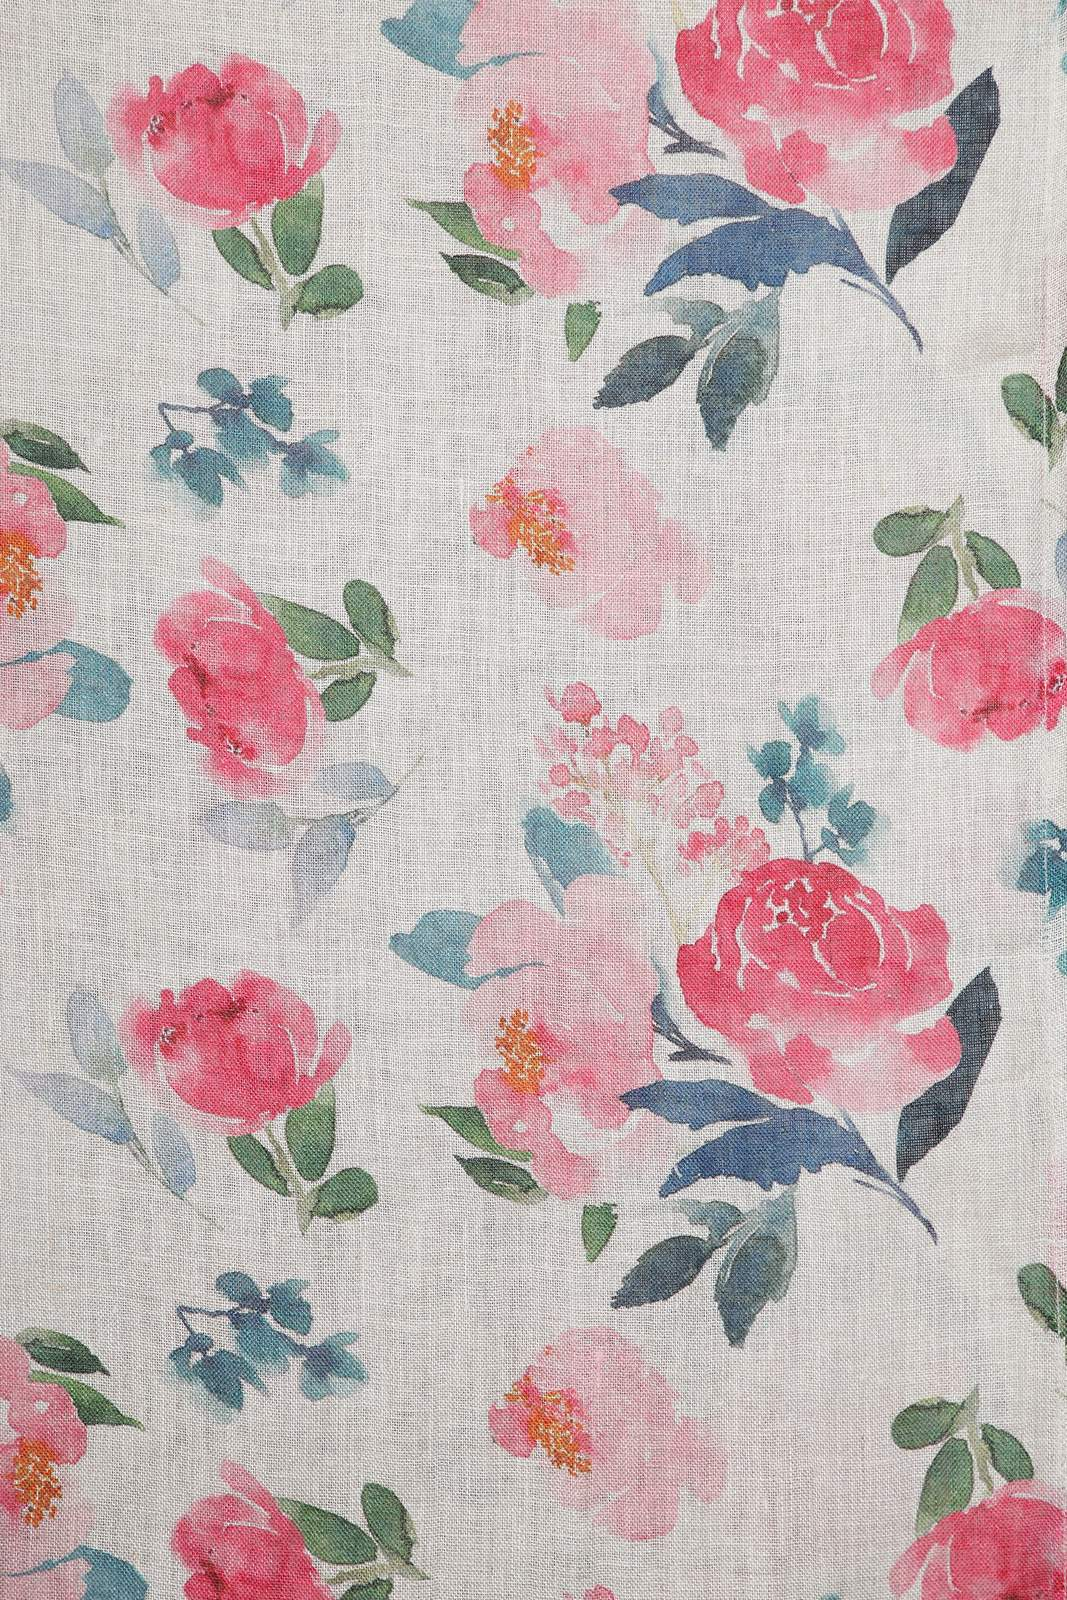 ST 907713S Pink Floral Printed Linen Stole One Size - Pink (One Size,Pink)